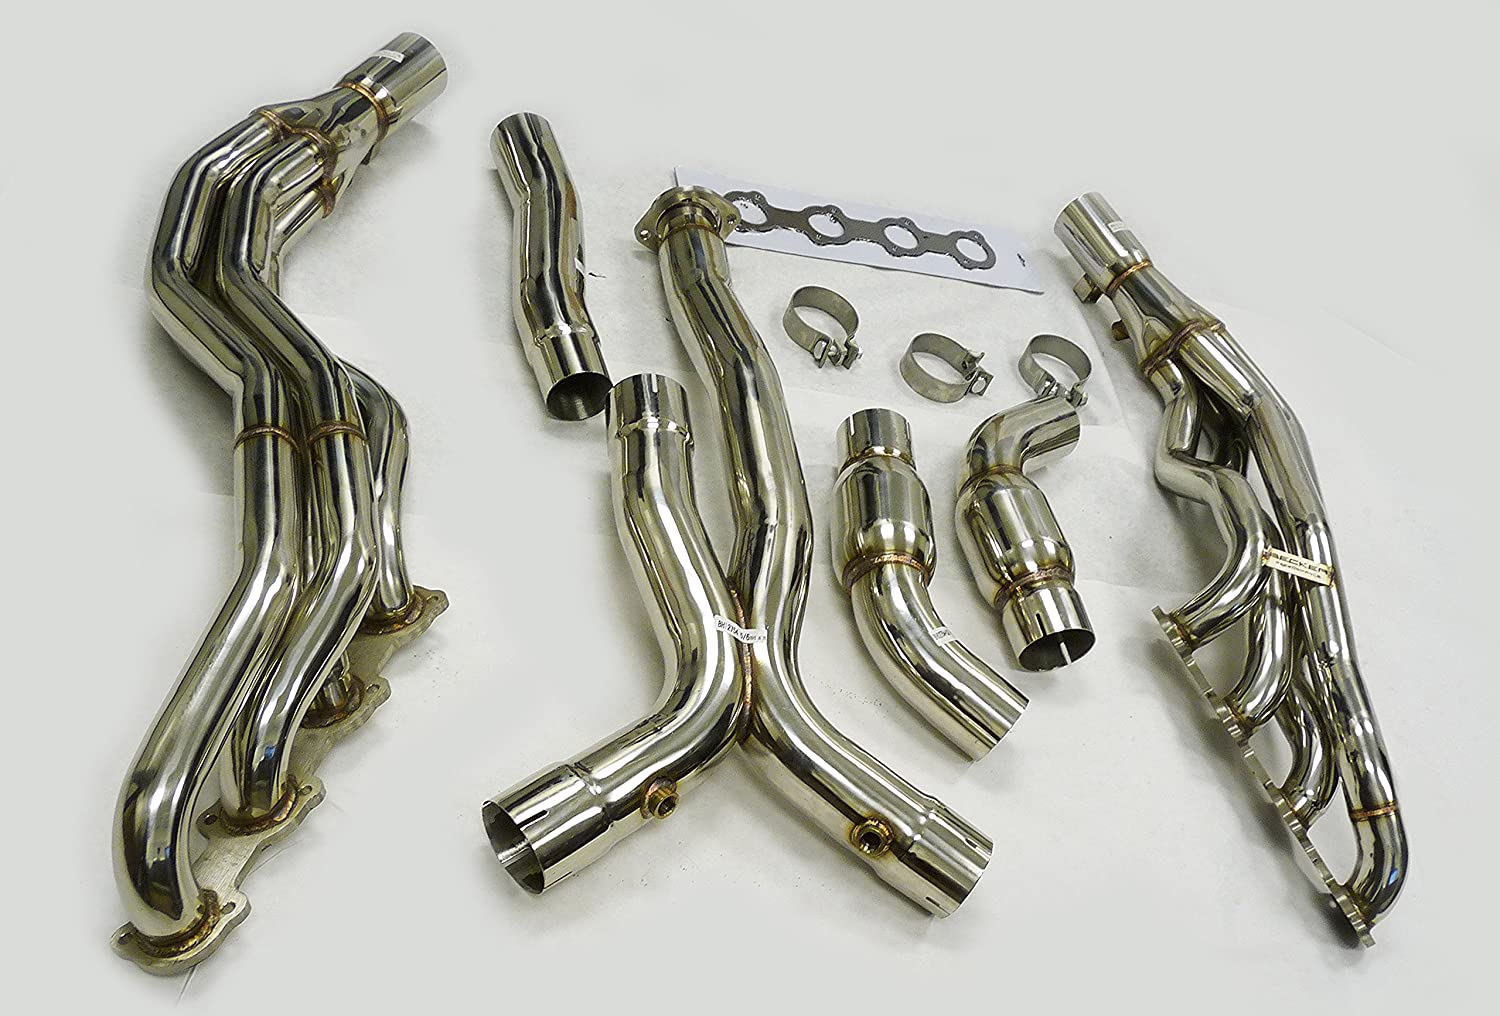 Amazon com: OBX Performance Catted Exhaust Header Manifold 03-06 E55